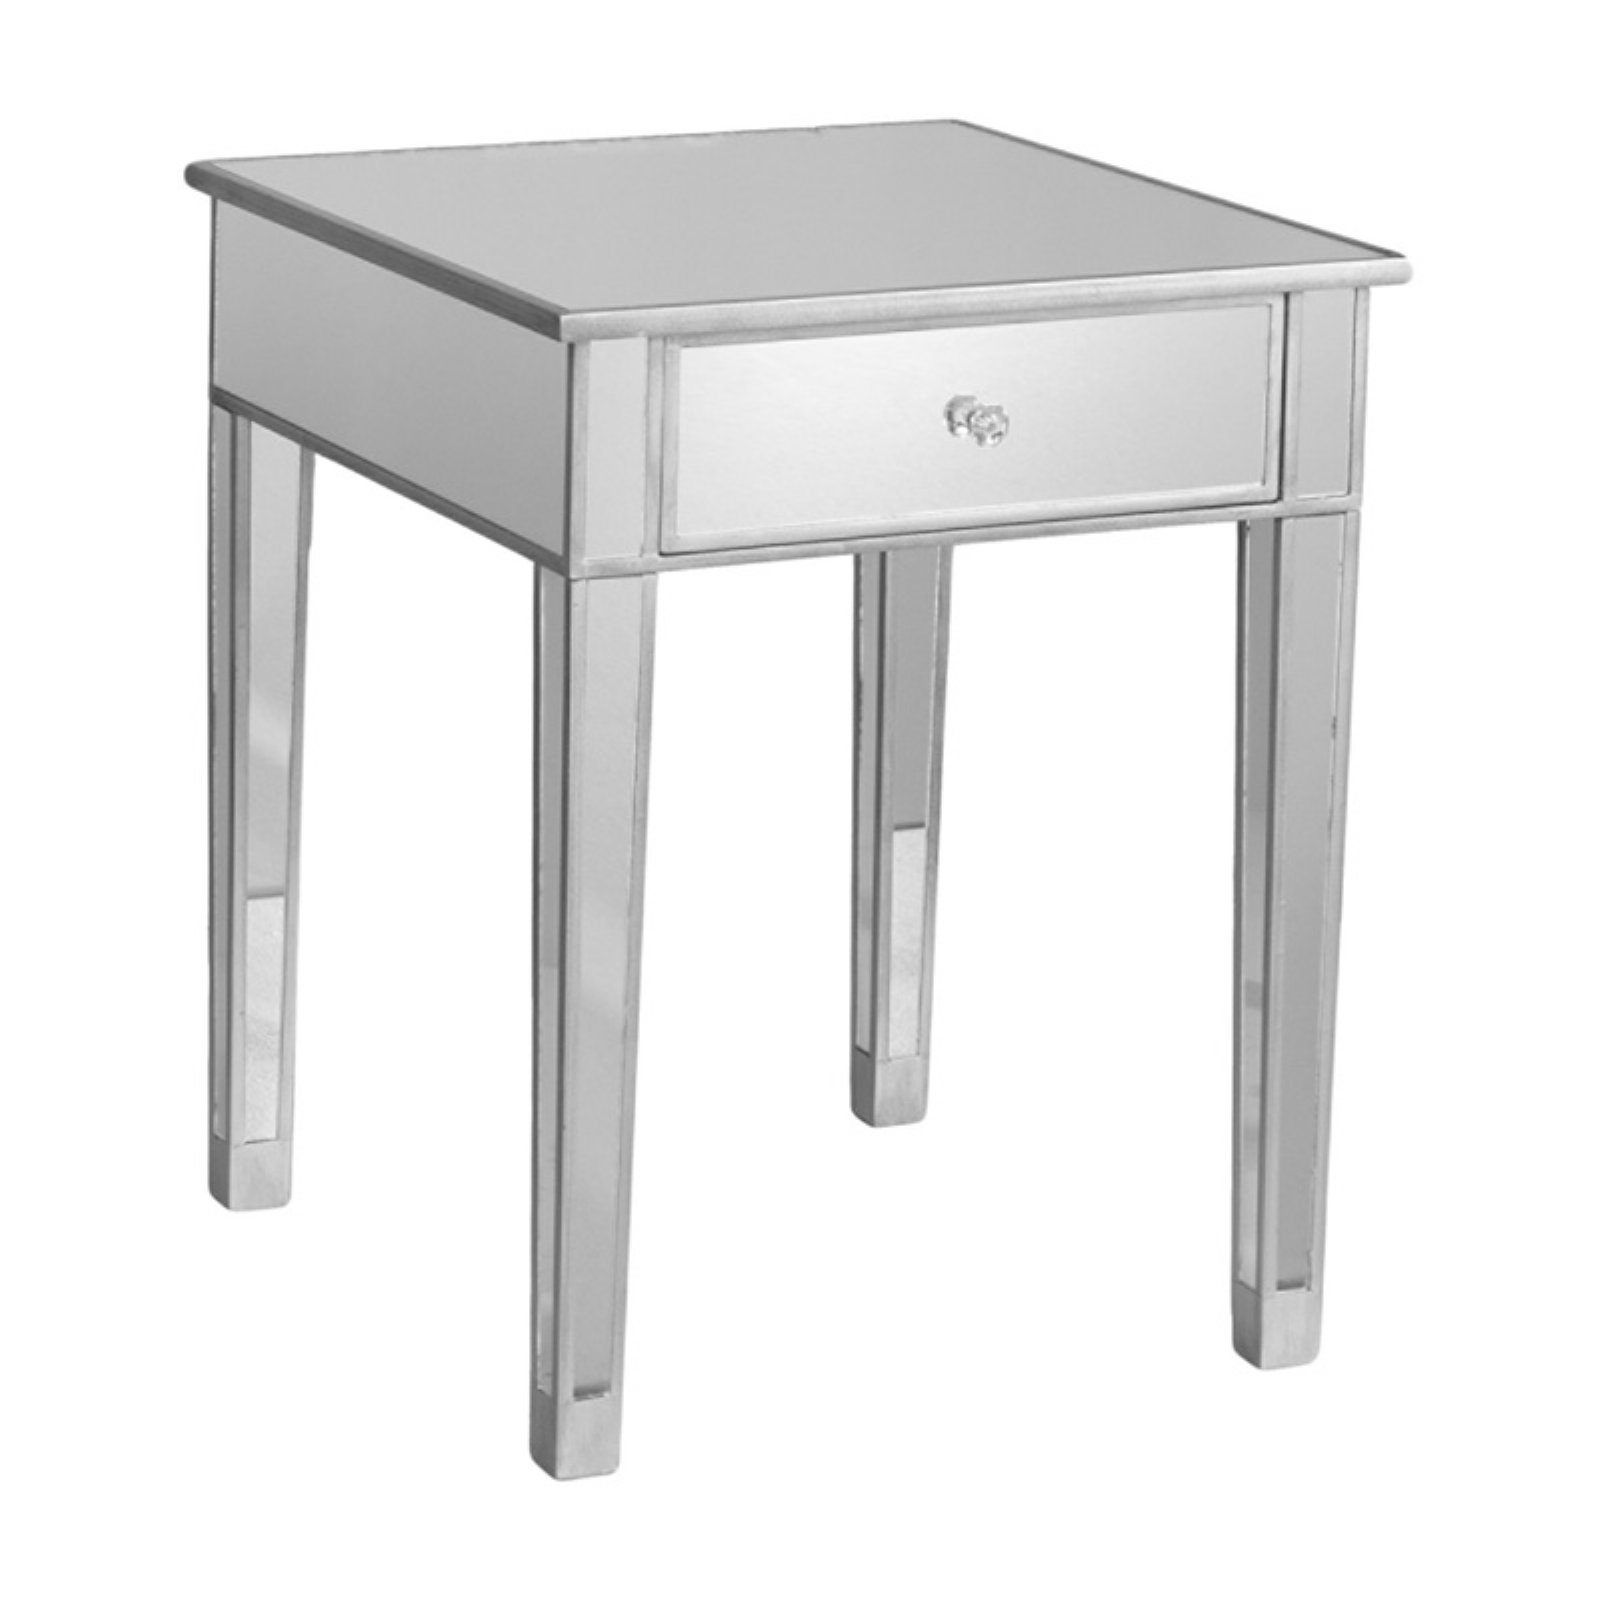 Southern Enterprises Bardot Mirrored Accent table by LIVEDITOR LIGHTING